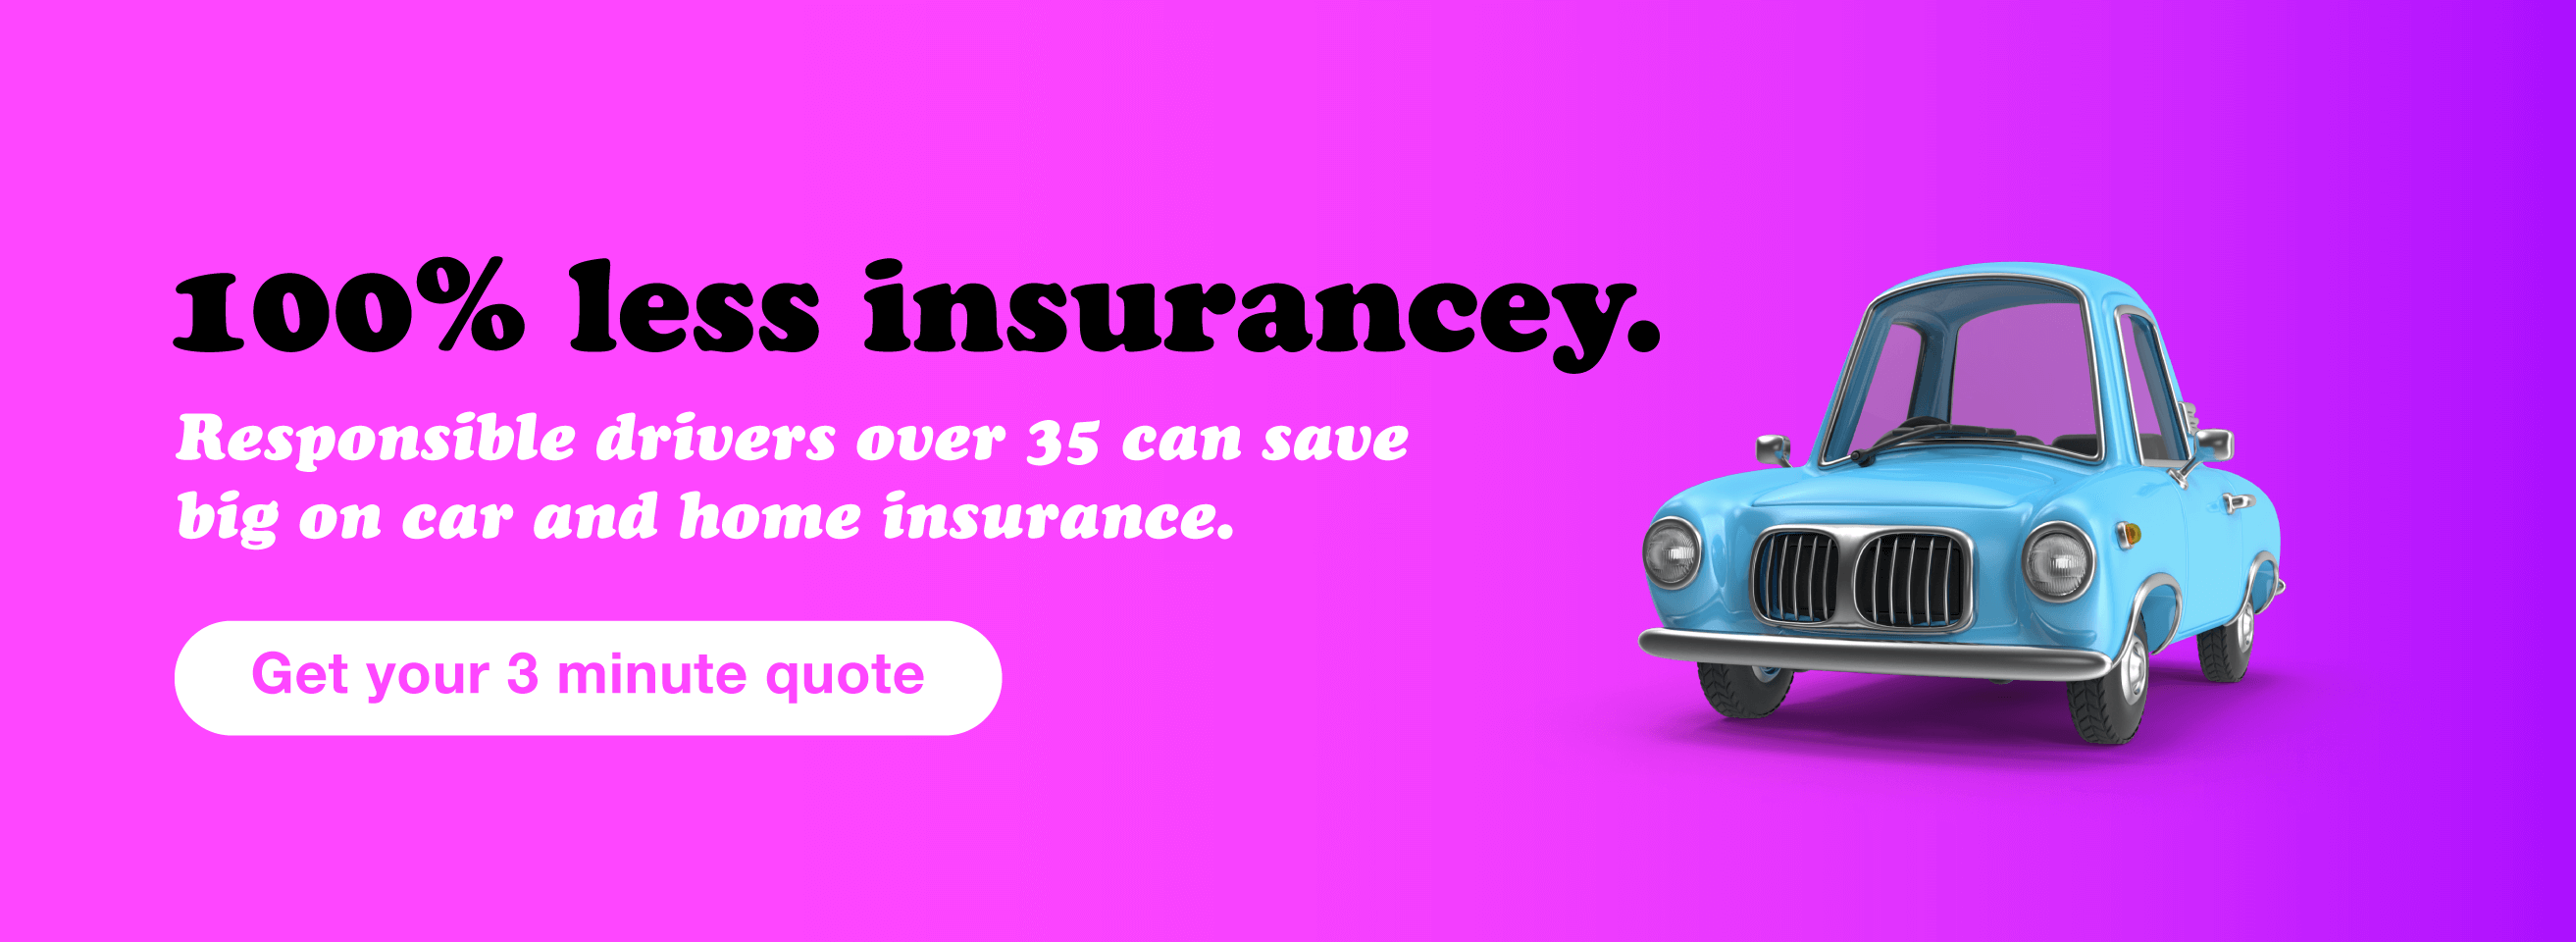 100% less insurancey. Responsible drivers over 35 can save big on car and home insurance. Get your 3 minute quote